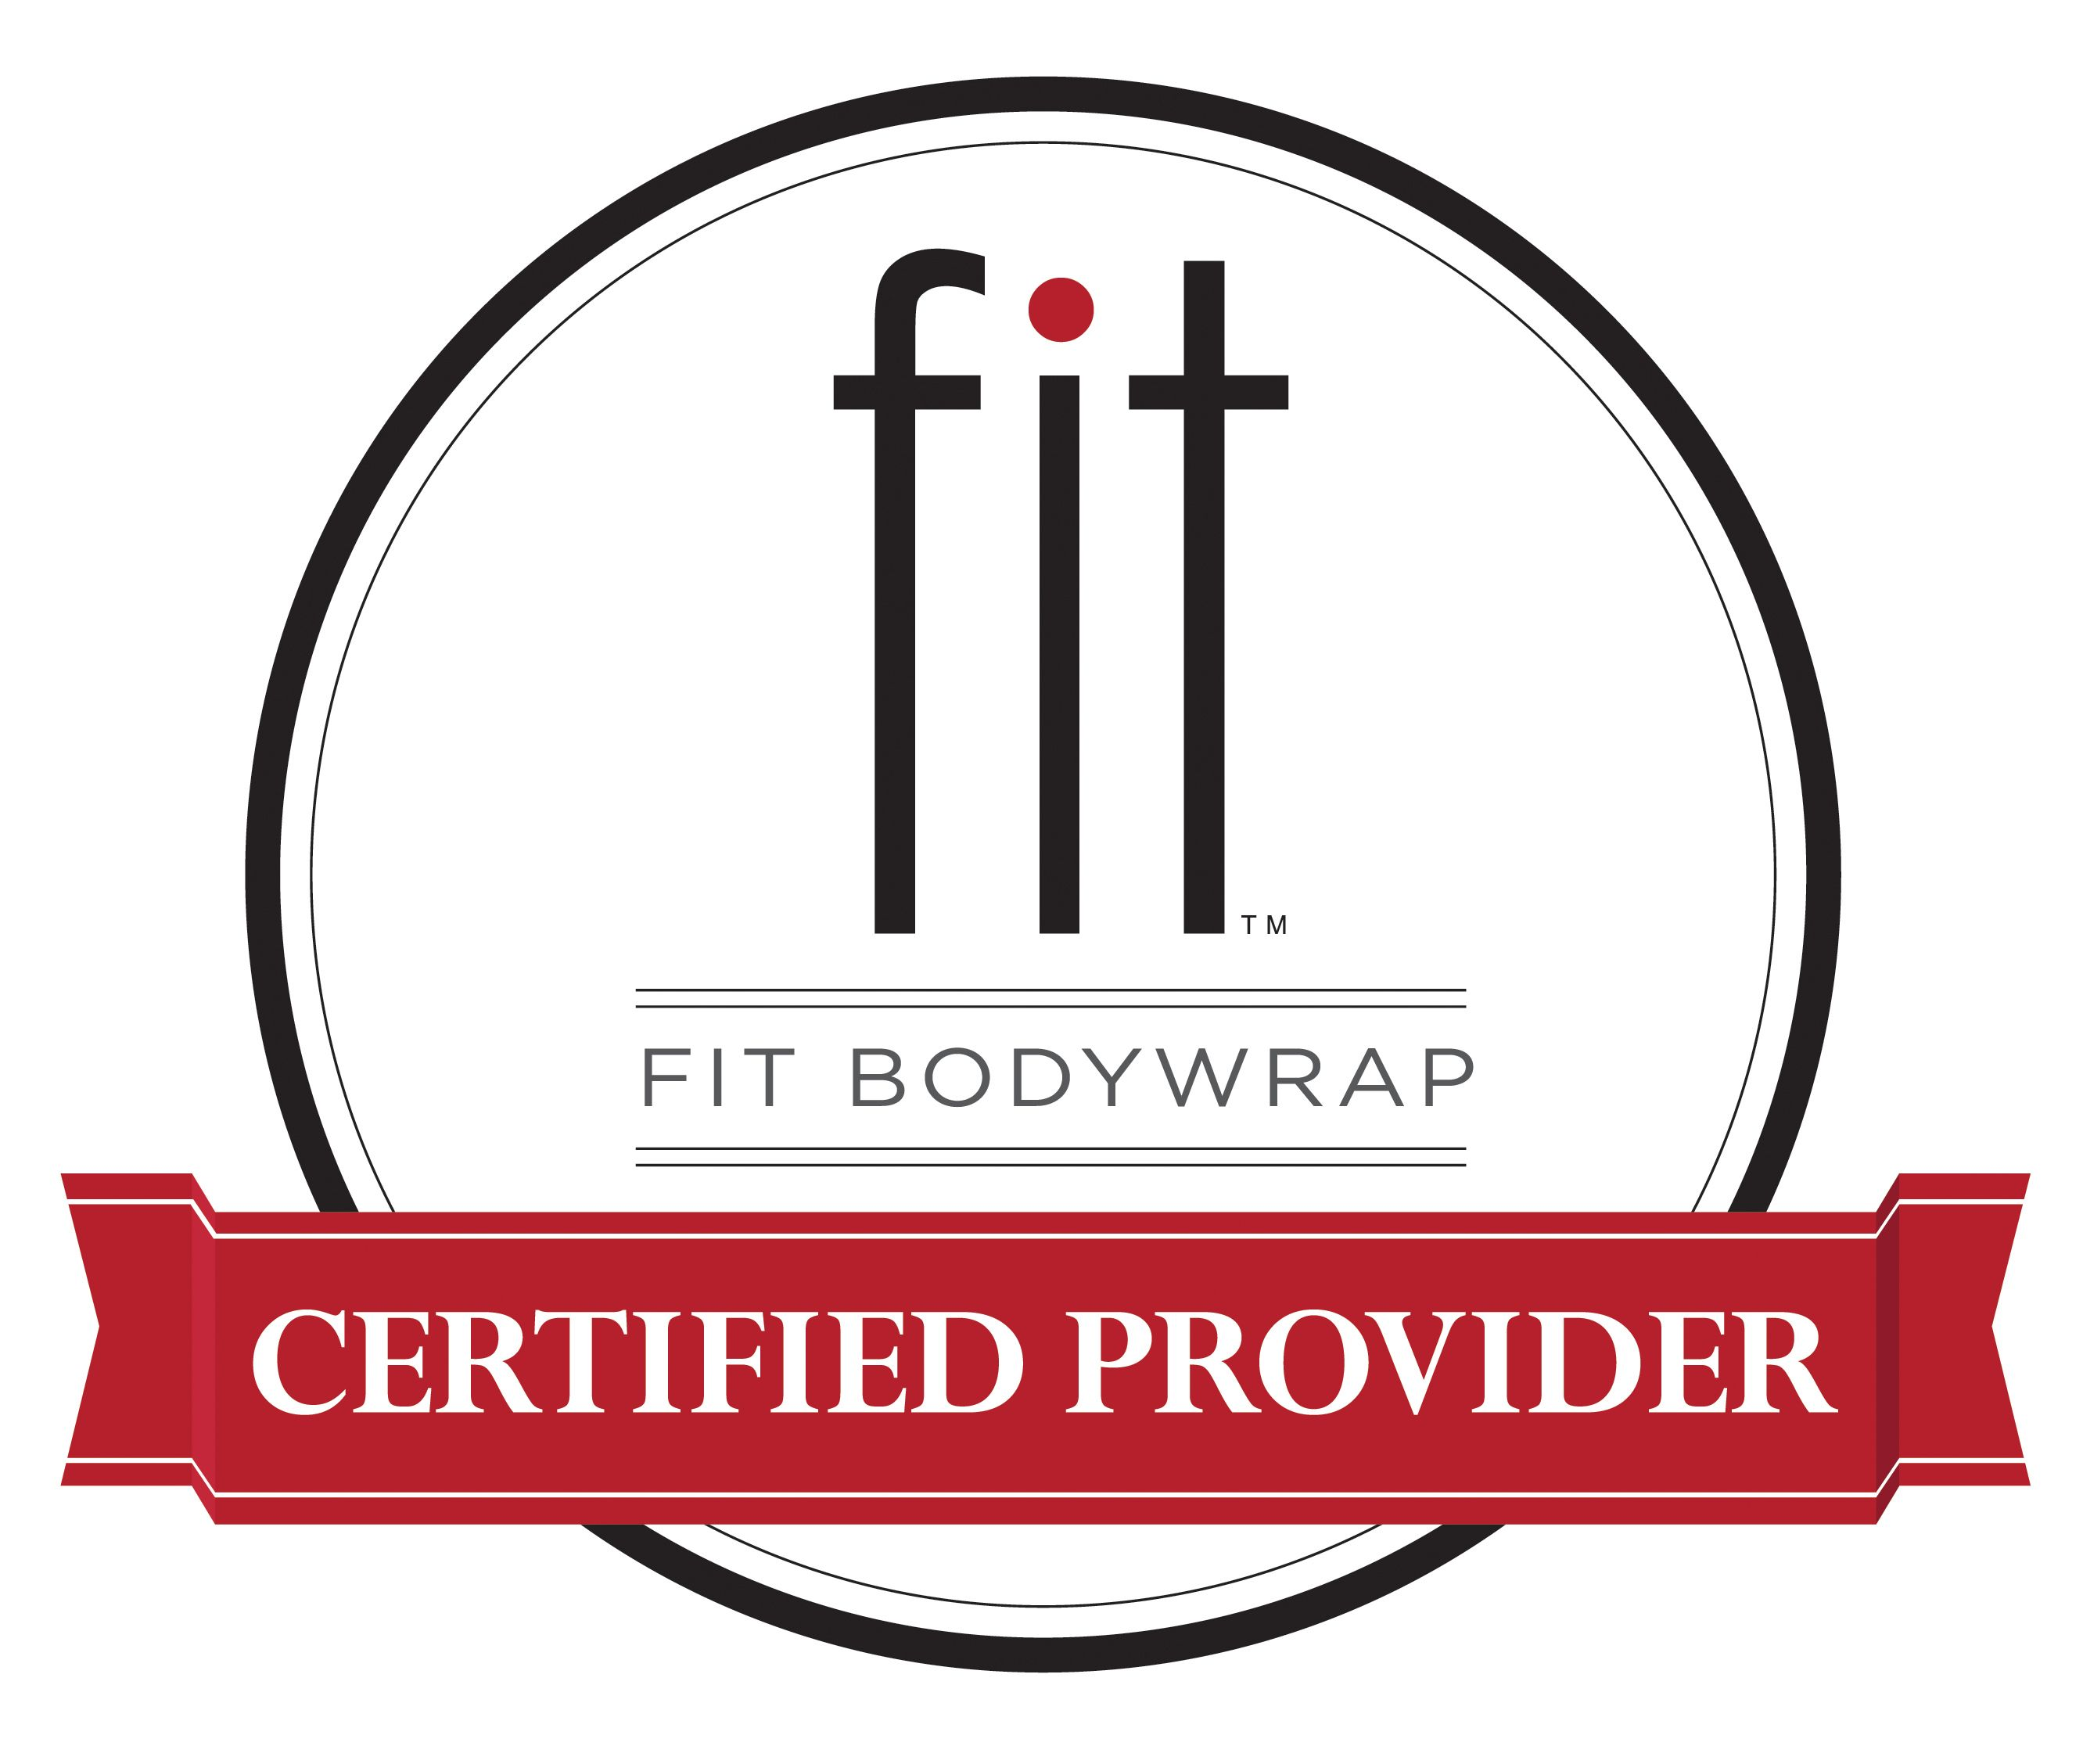 a FIT Bodywrap certified provider today! We offer